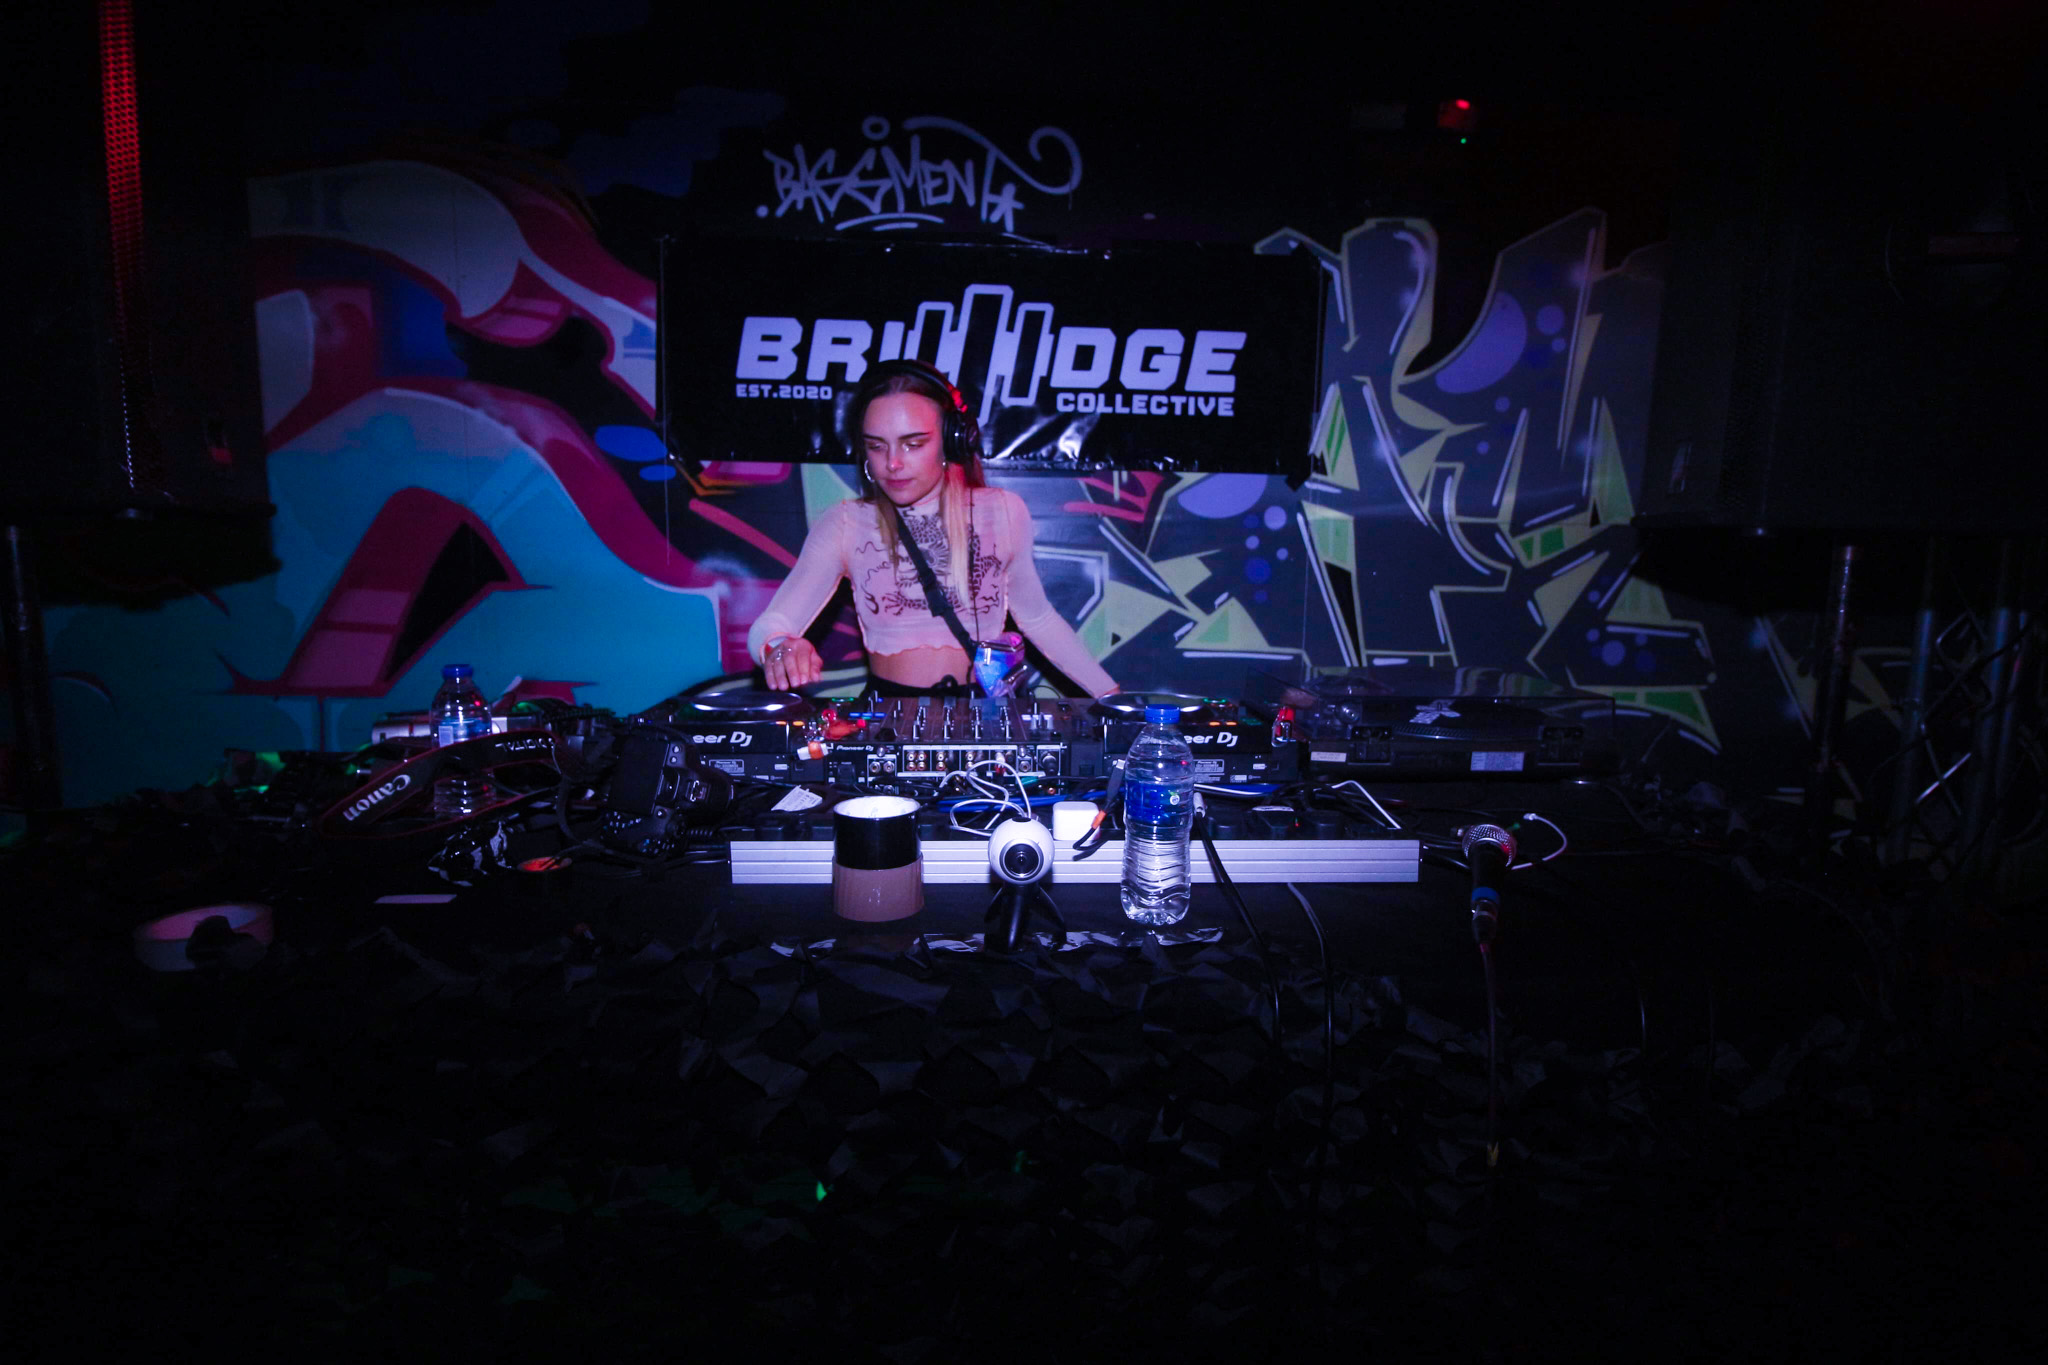 Bethany aims high with BASSment 1